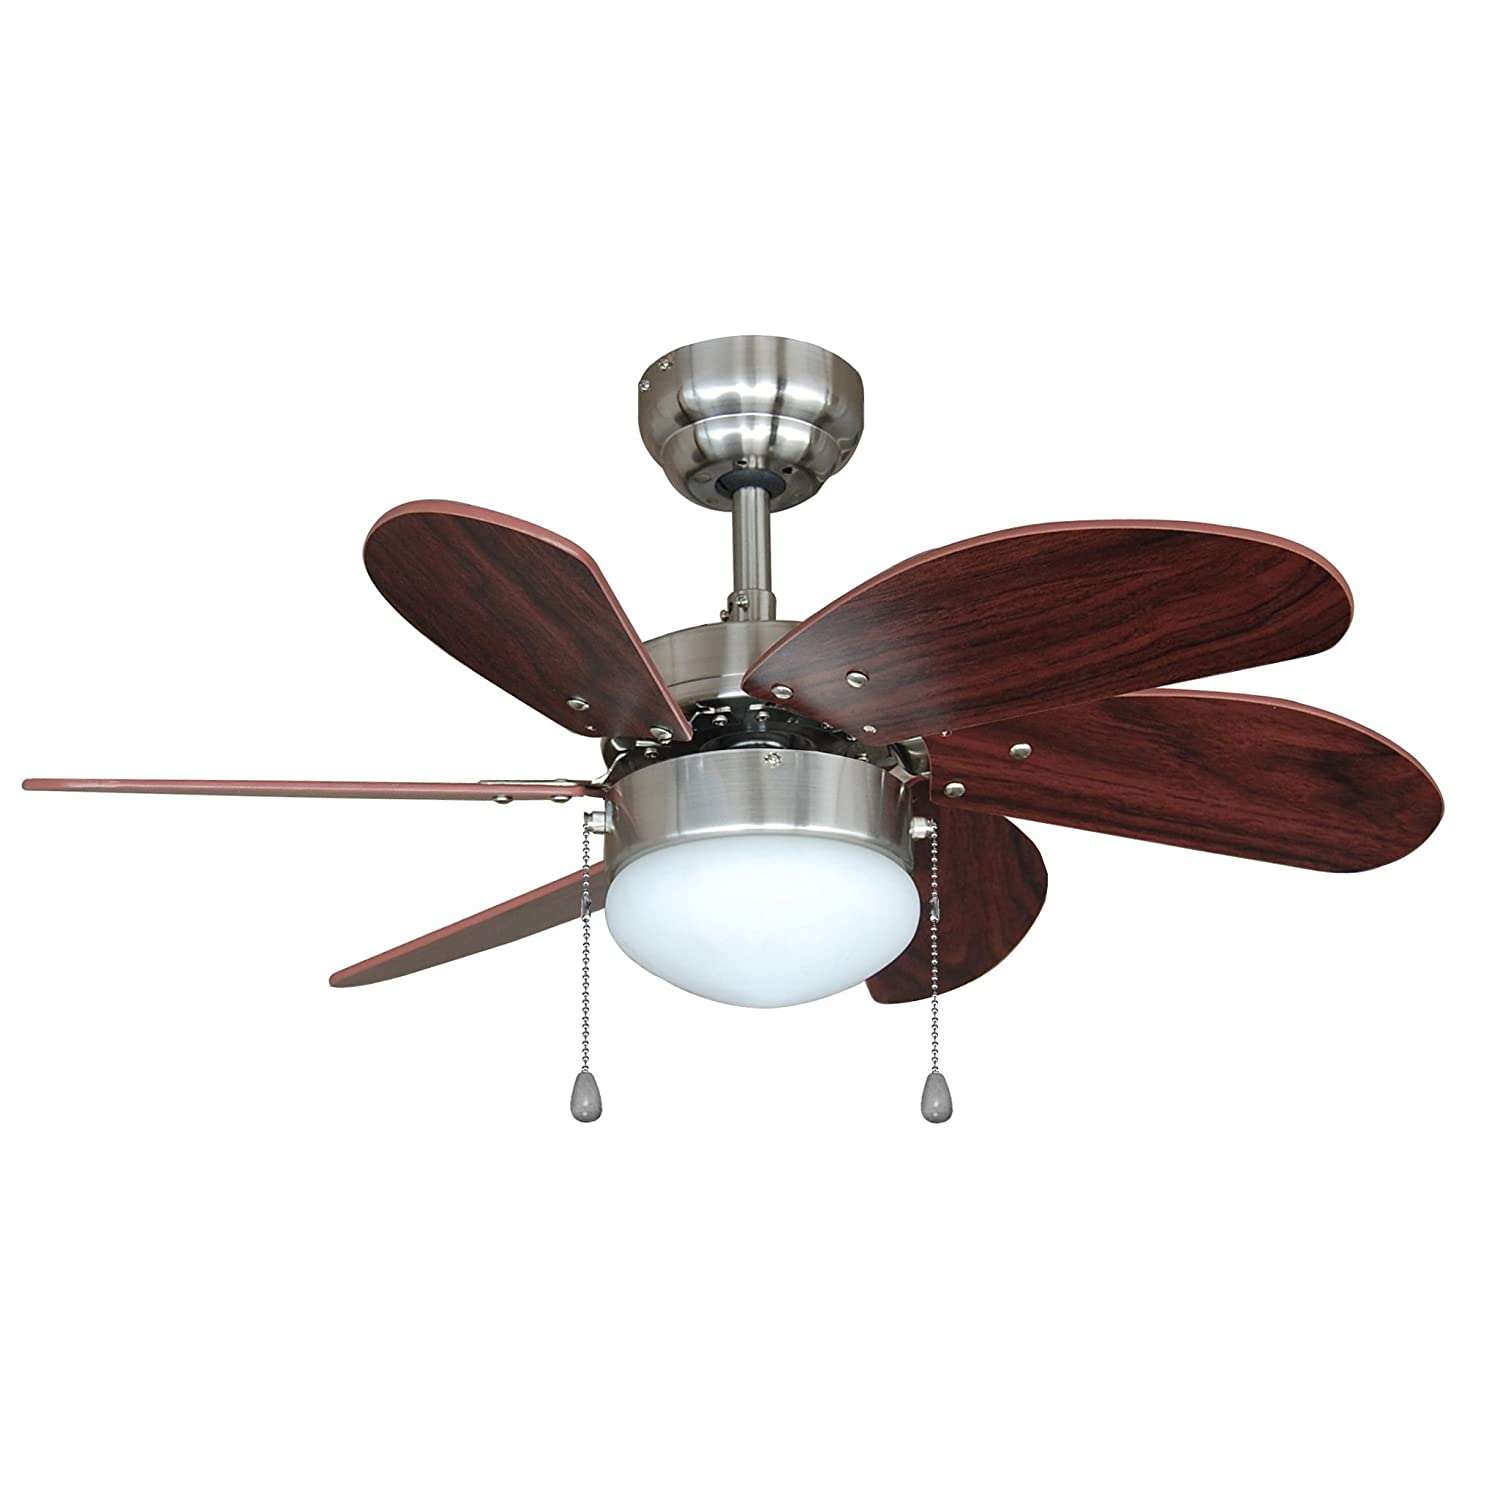 Hardware house h10 4852 monterey 30 inch dual mount ceiling fan hardware house h10 4852 monterey 30 inch dual mount ceiling fan beach wood and satin nickel amazon aloadofball Choice Image